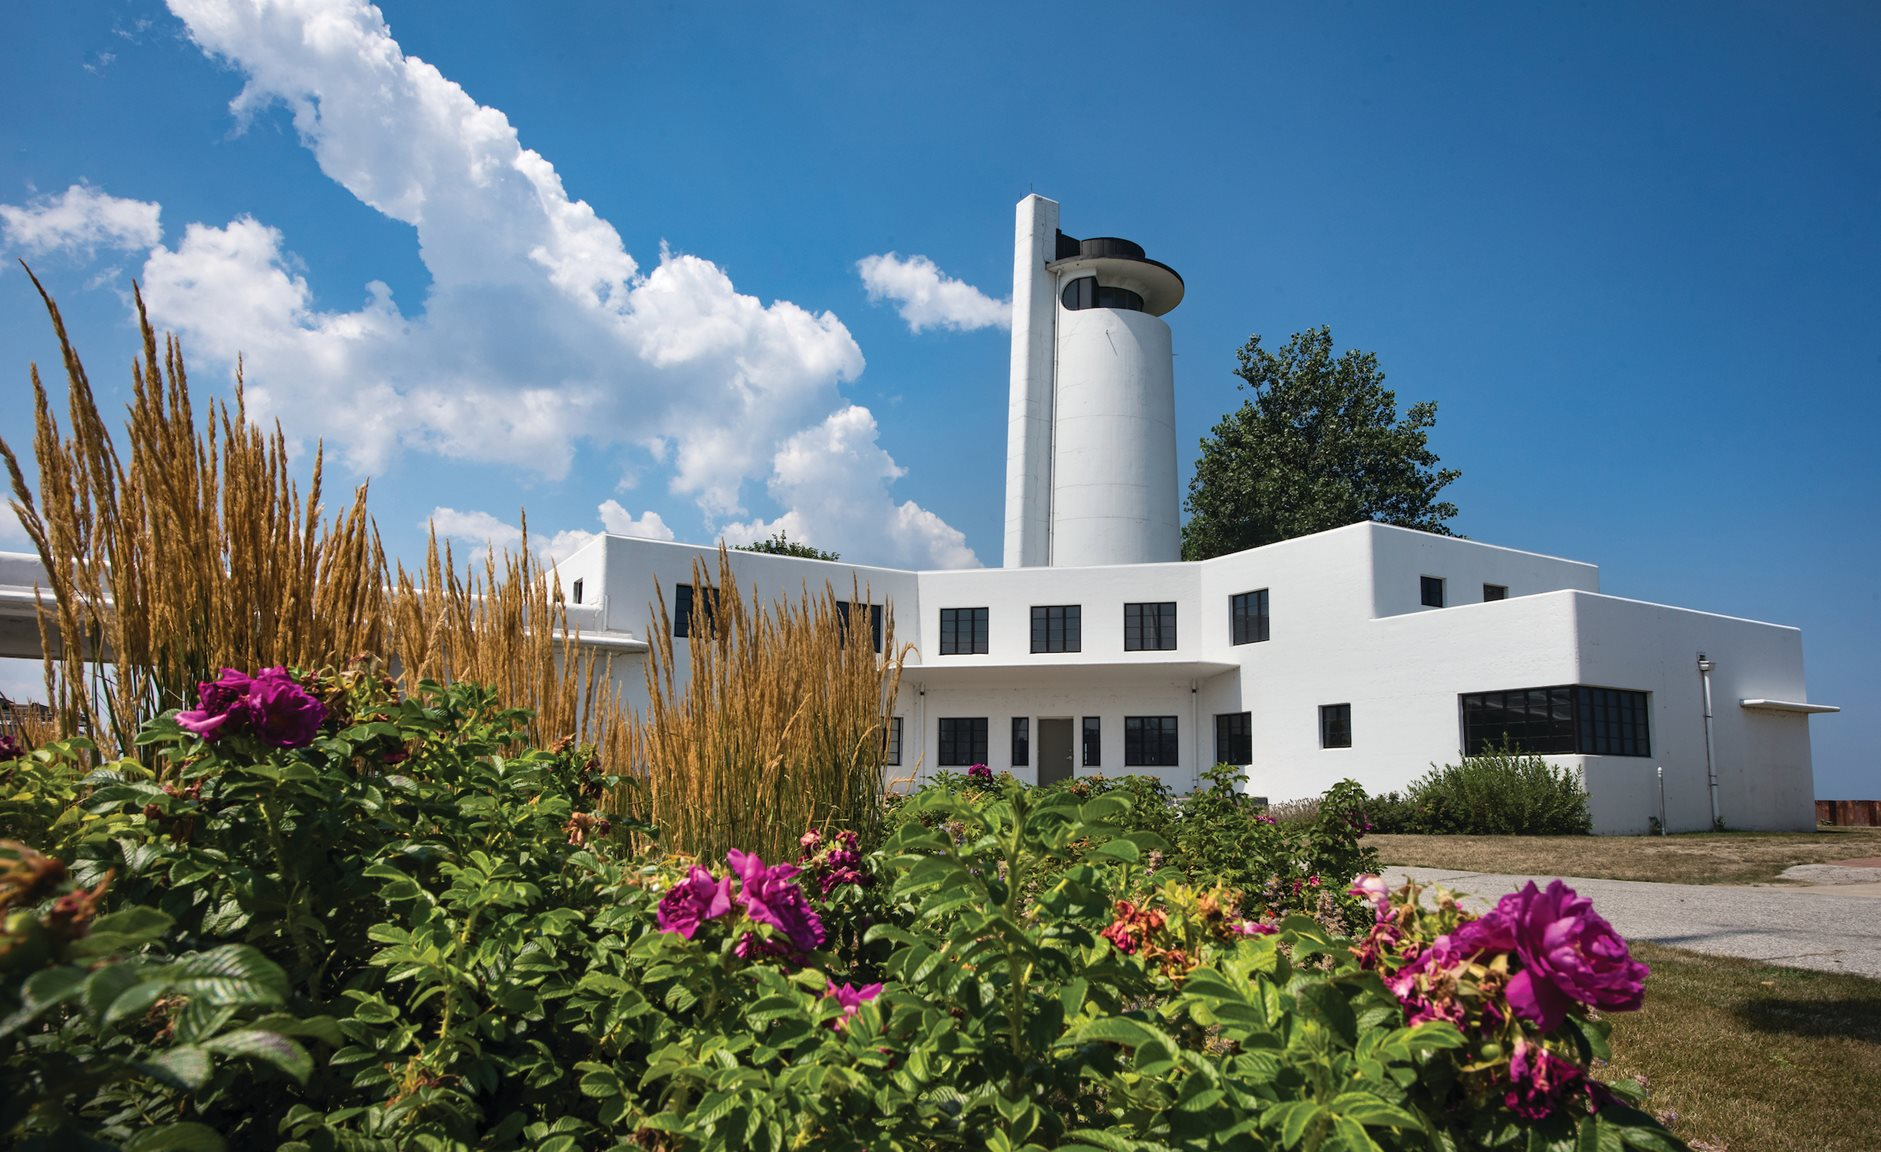 Cleveland Metroparks Completes Phase One in Restoration of Historic Former Coast Guard Station